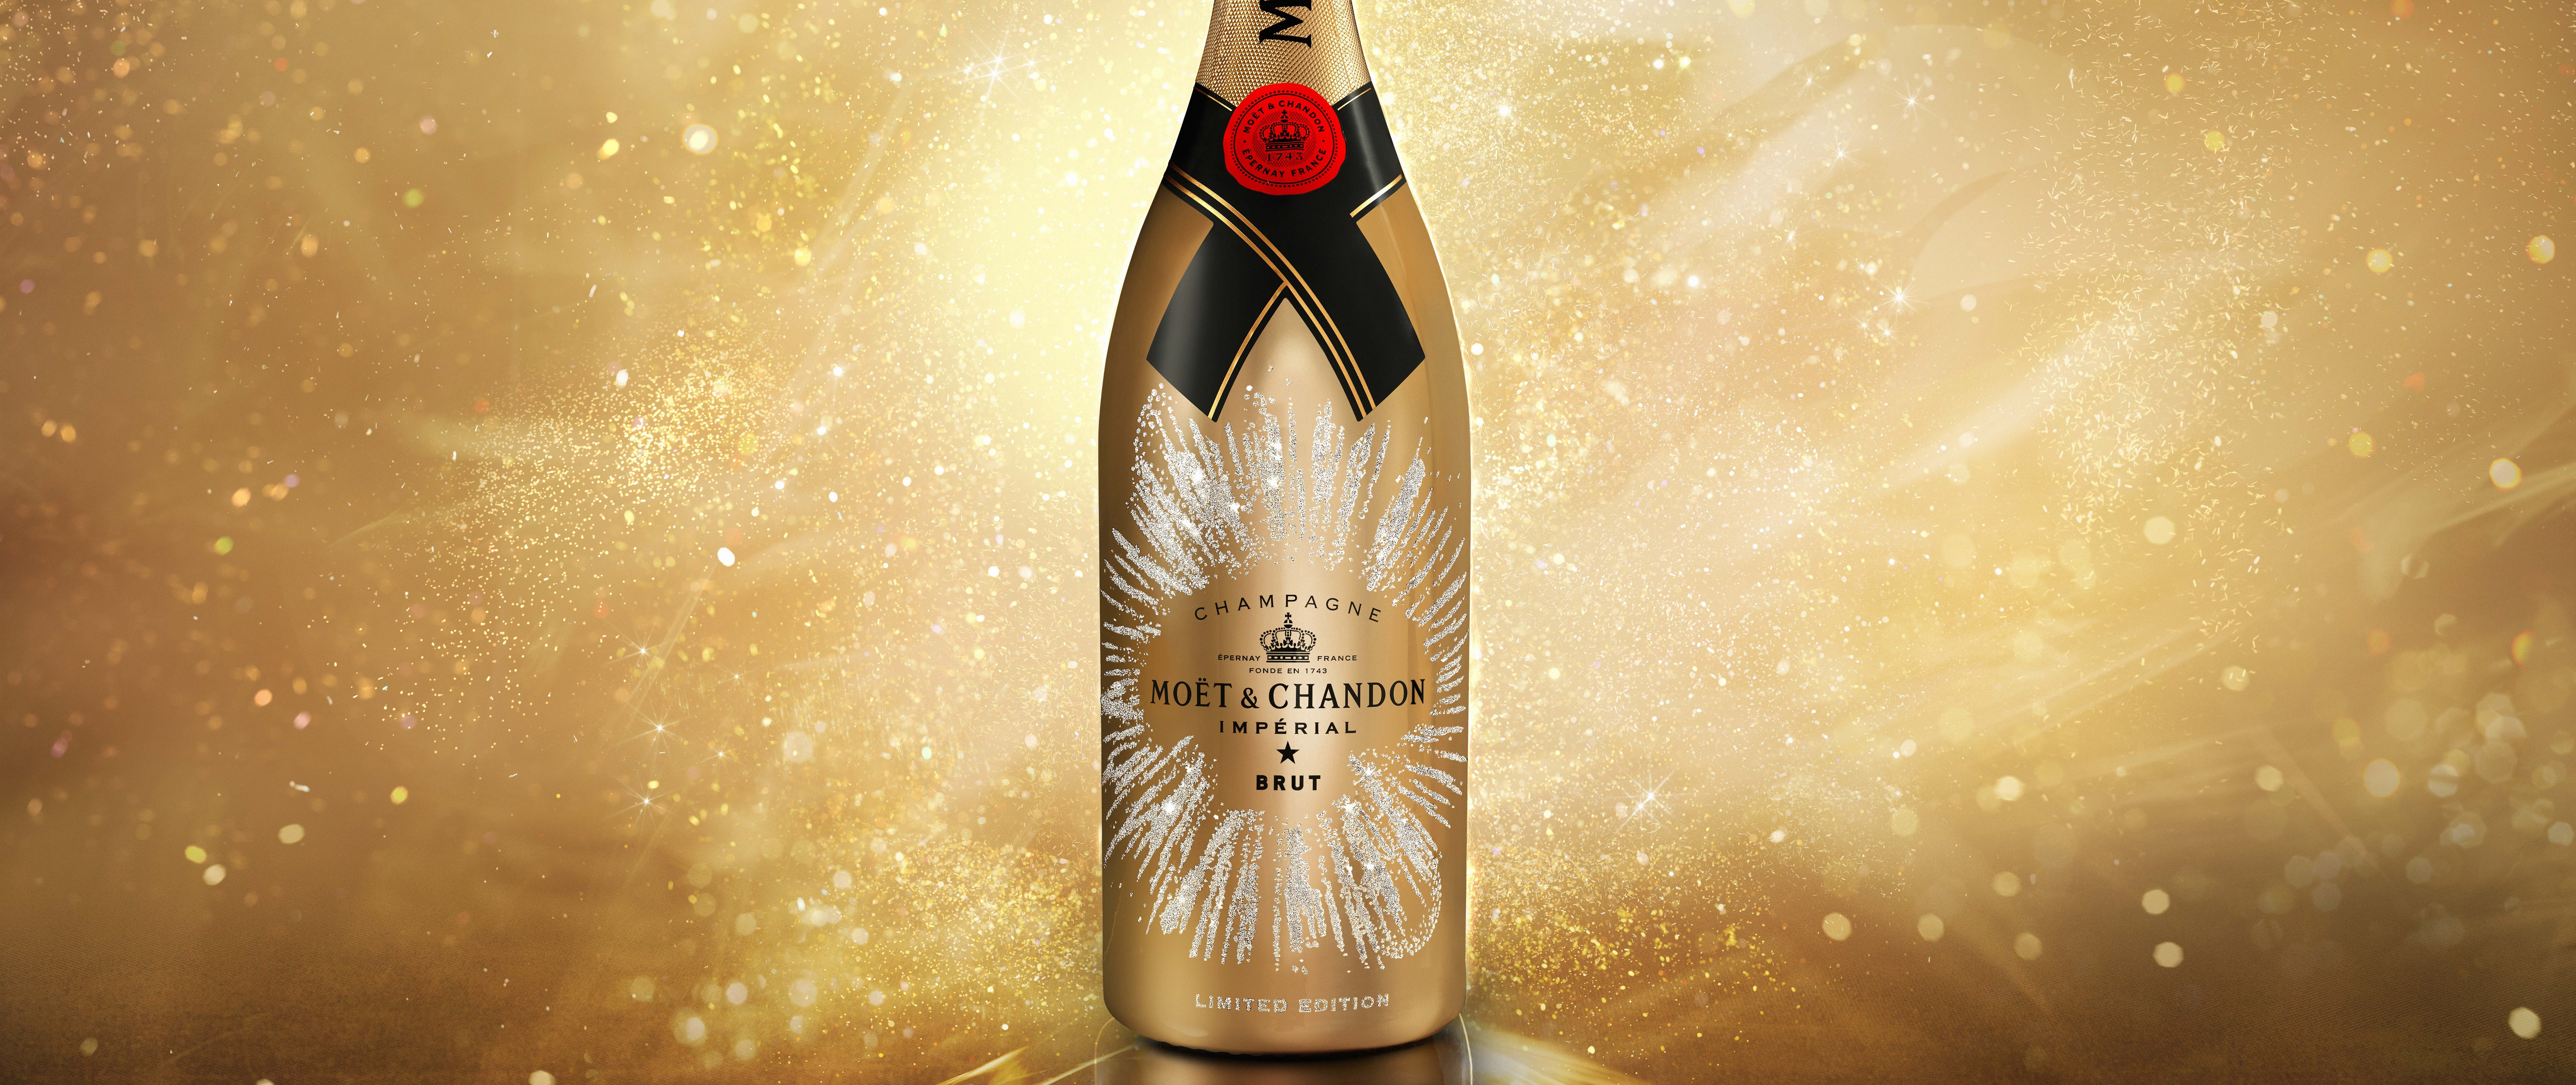 Champagne High Quality Wallpapers